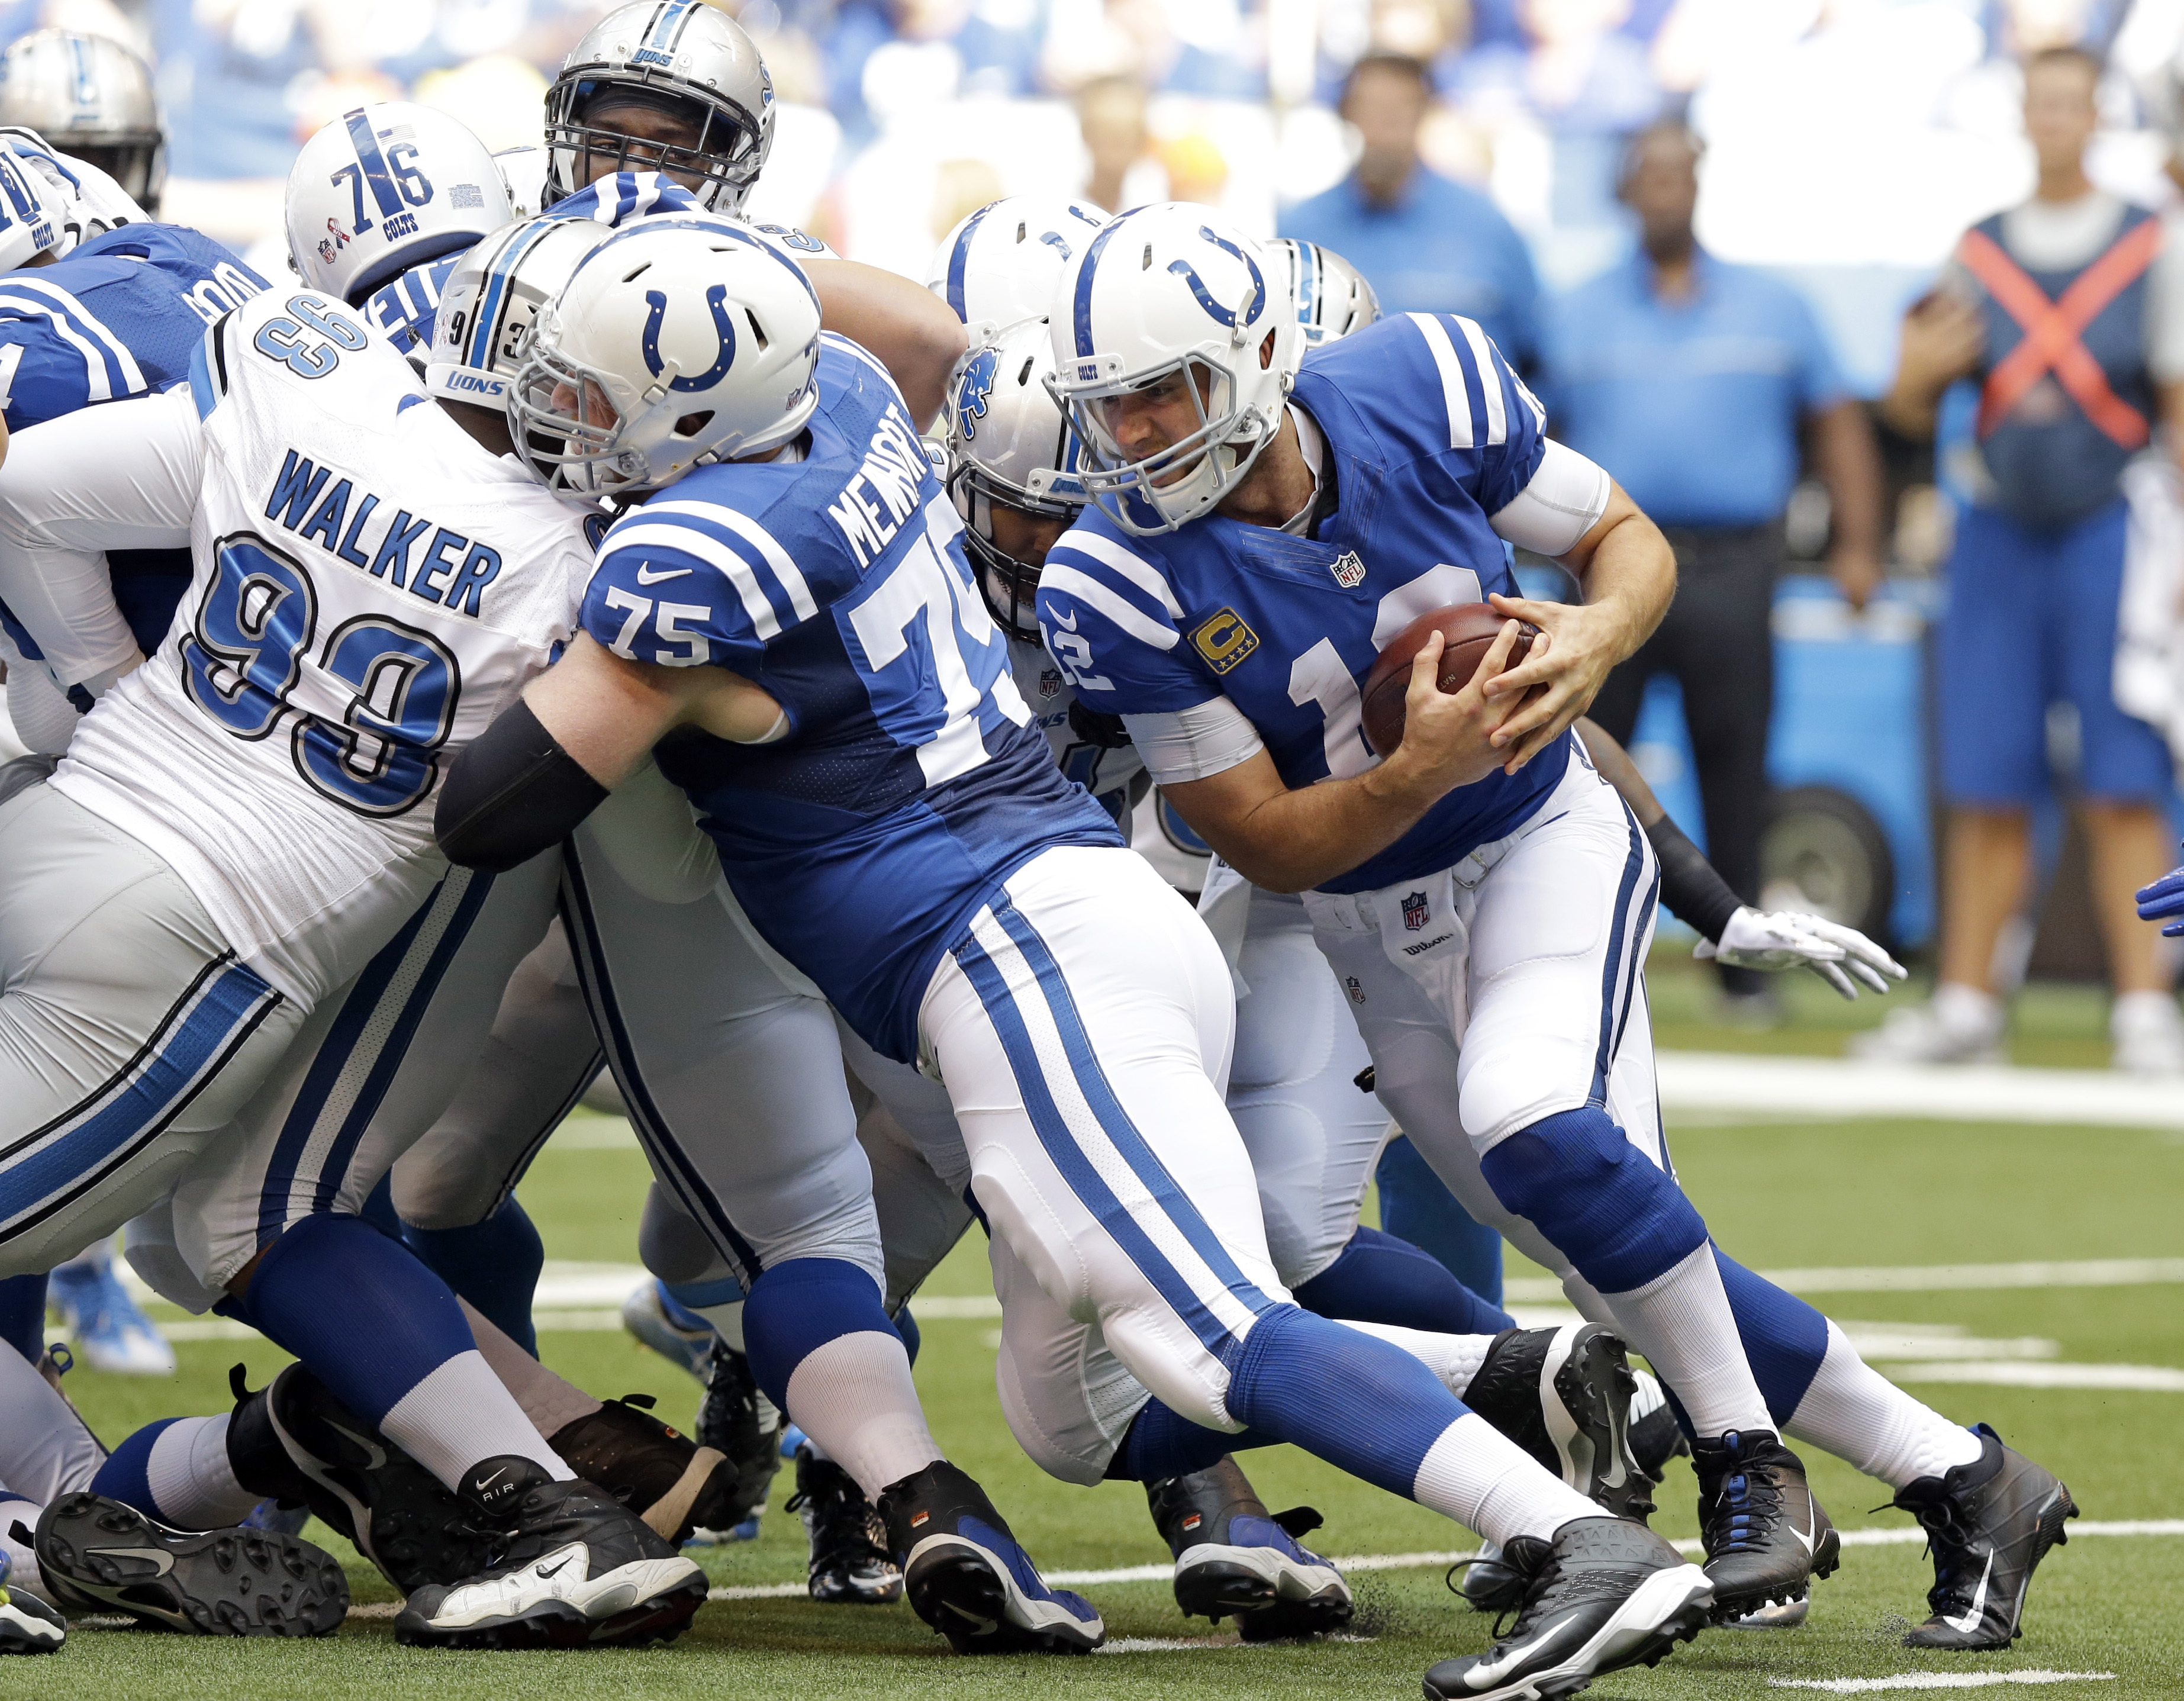 Indianapolis Colts quarterback Andrew Luck (12) runs for a first down against the Detroit Lions during the first half of an NFL football game in Indianapolis, Sunday, Sept. 11, 2016. (AP Photo/Michael Conroy)